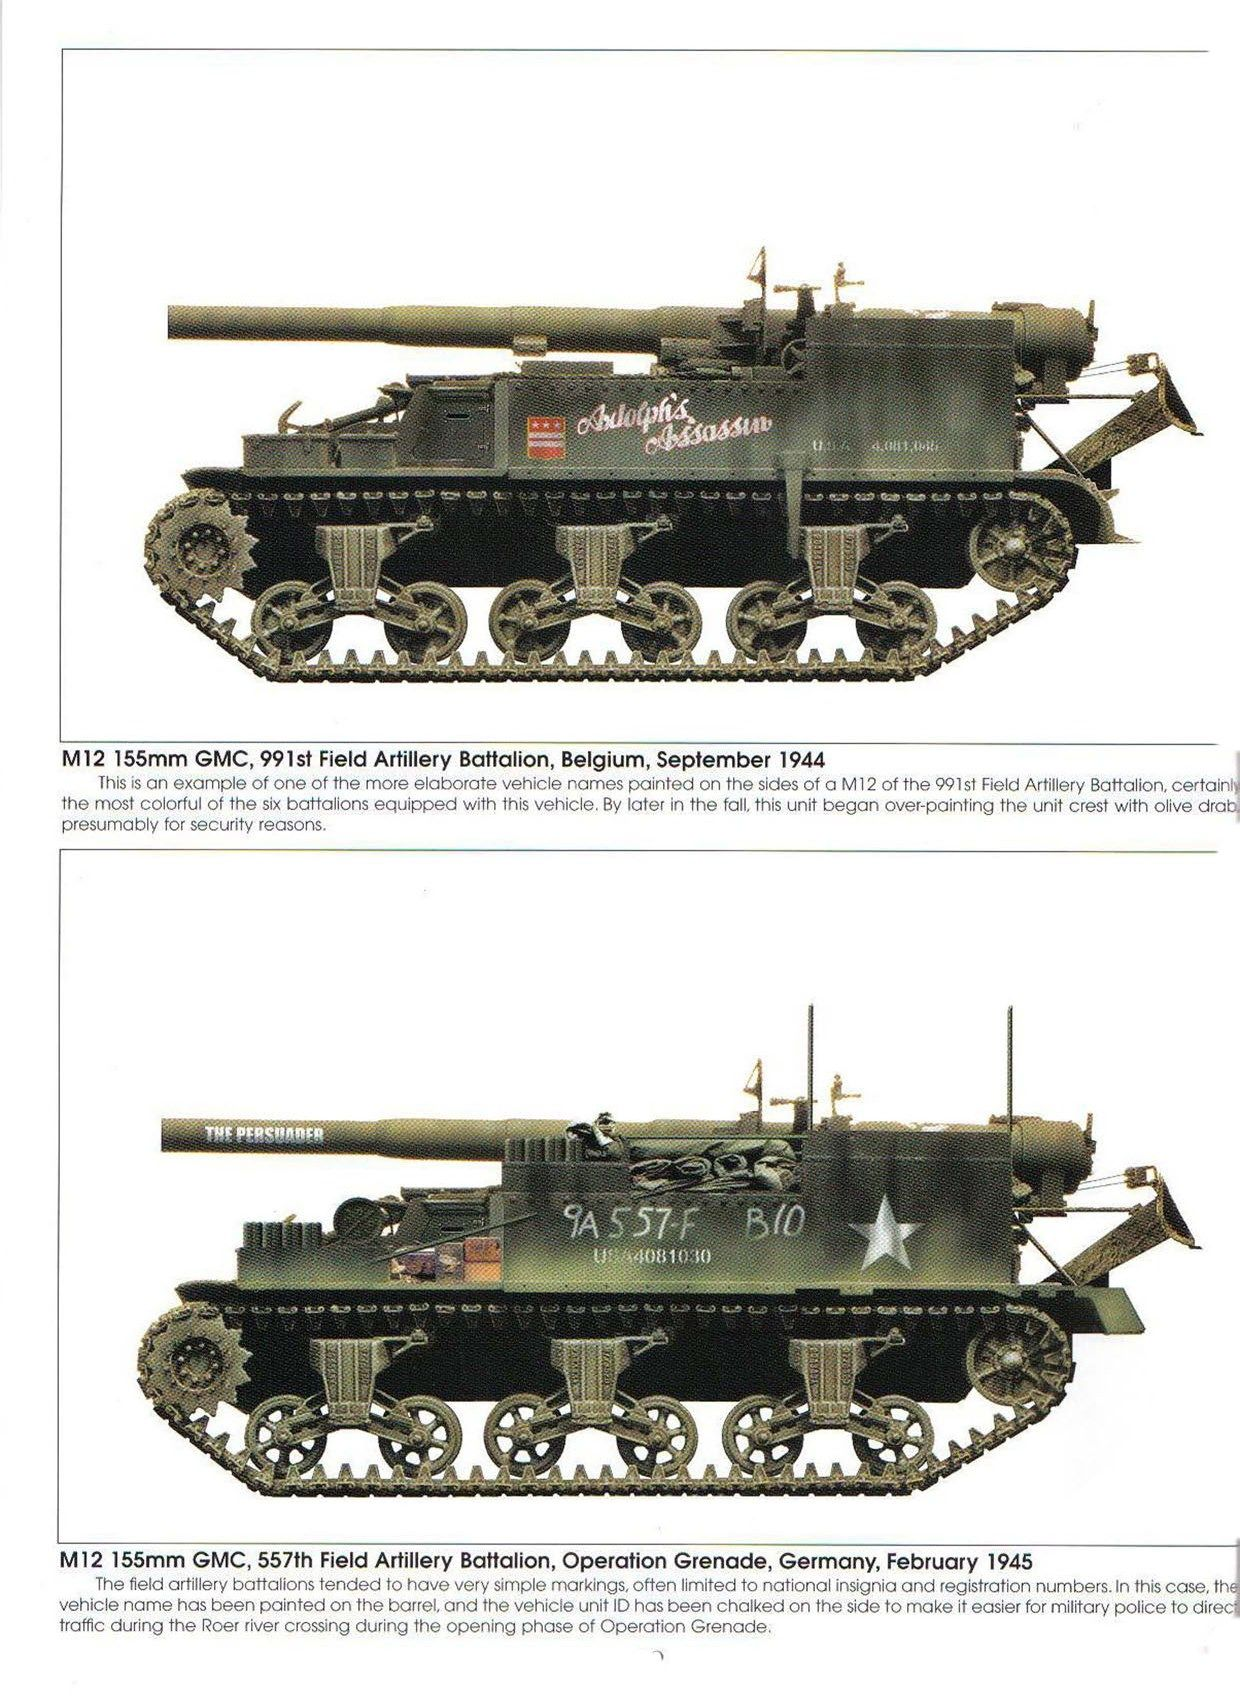 Pin By Gary Nado On Armor In 2020 With Images Tanks Military